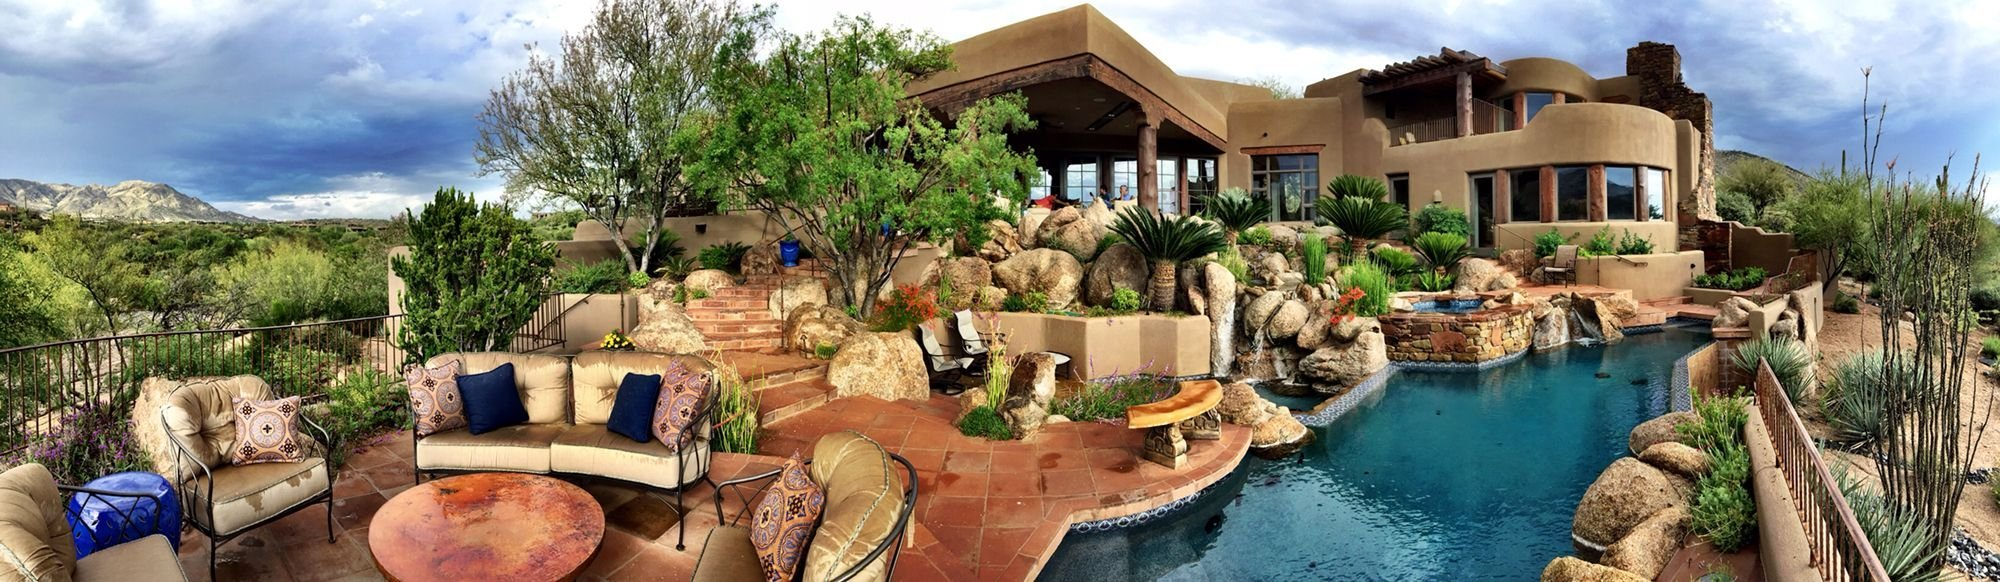 Golf Course Homes For Sale in Chandler